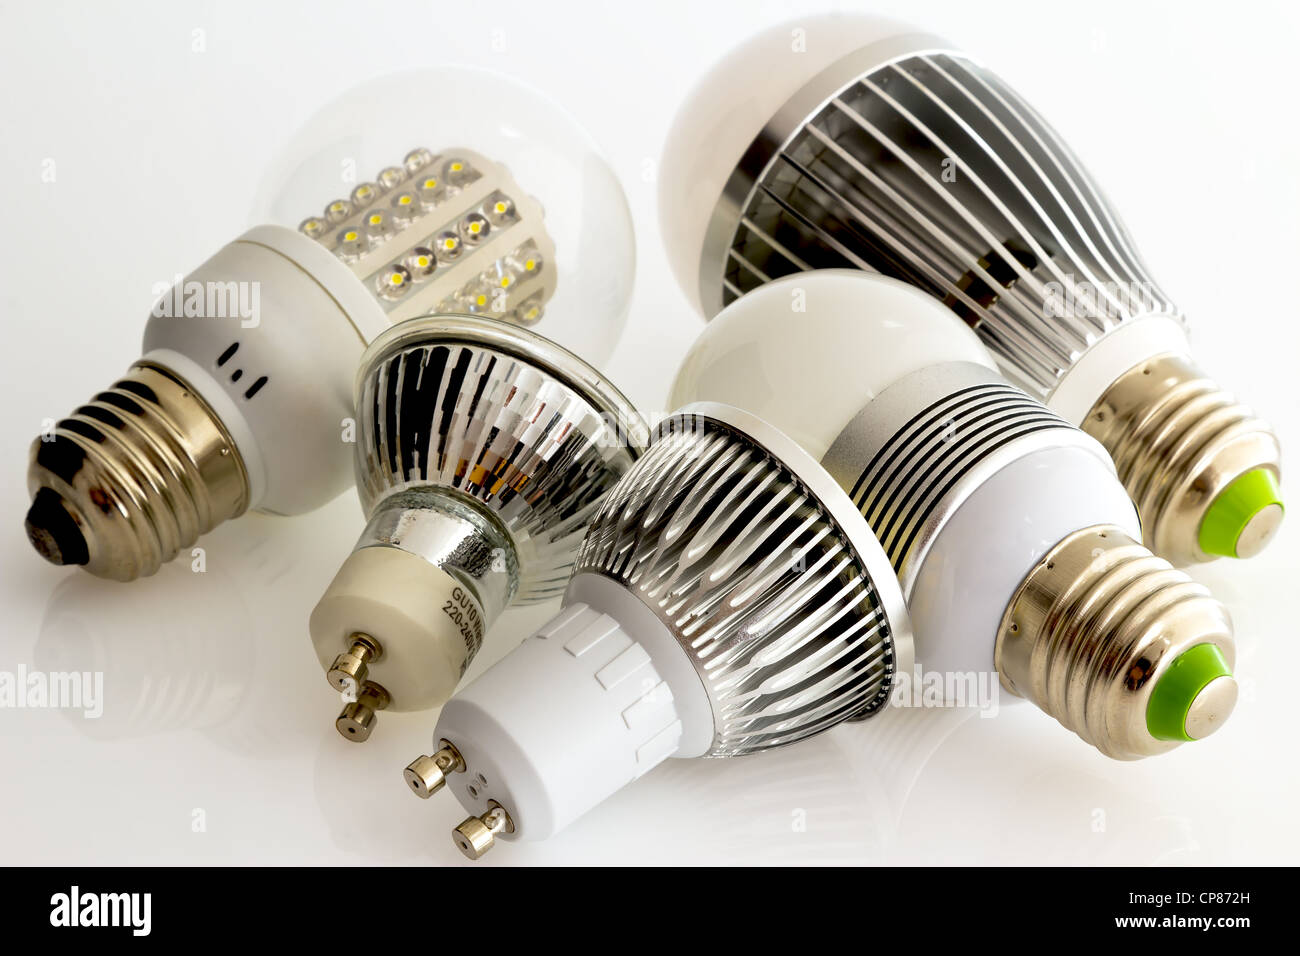 LED lamps E27 and GU10 without cooling and new cooling technology depending on the lamp power - Stock Image